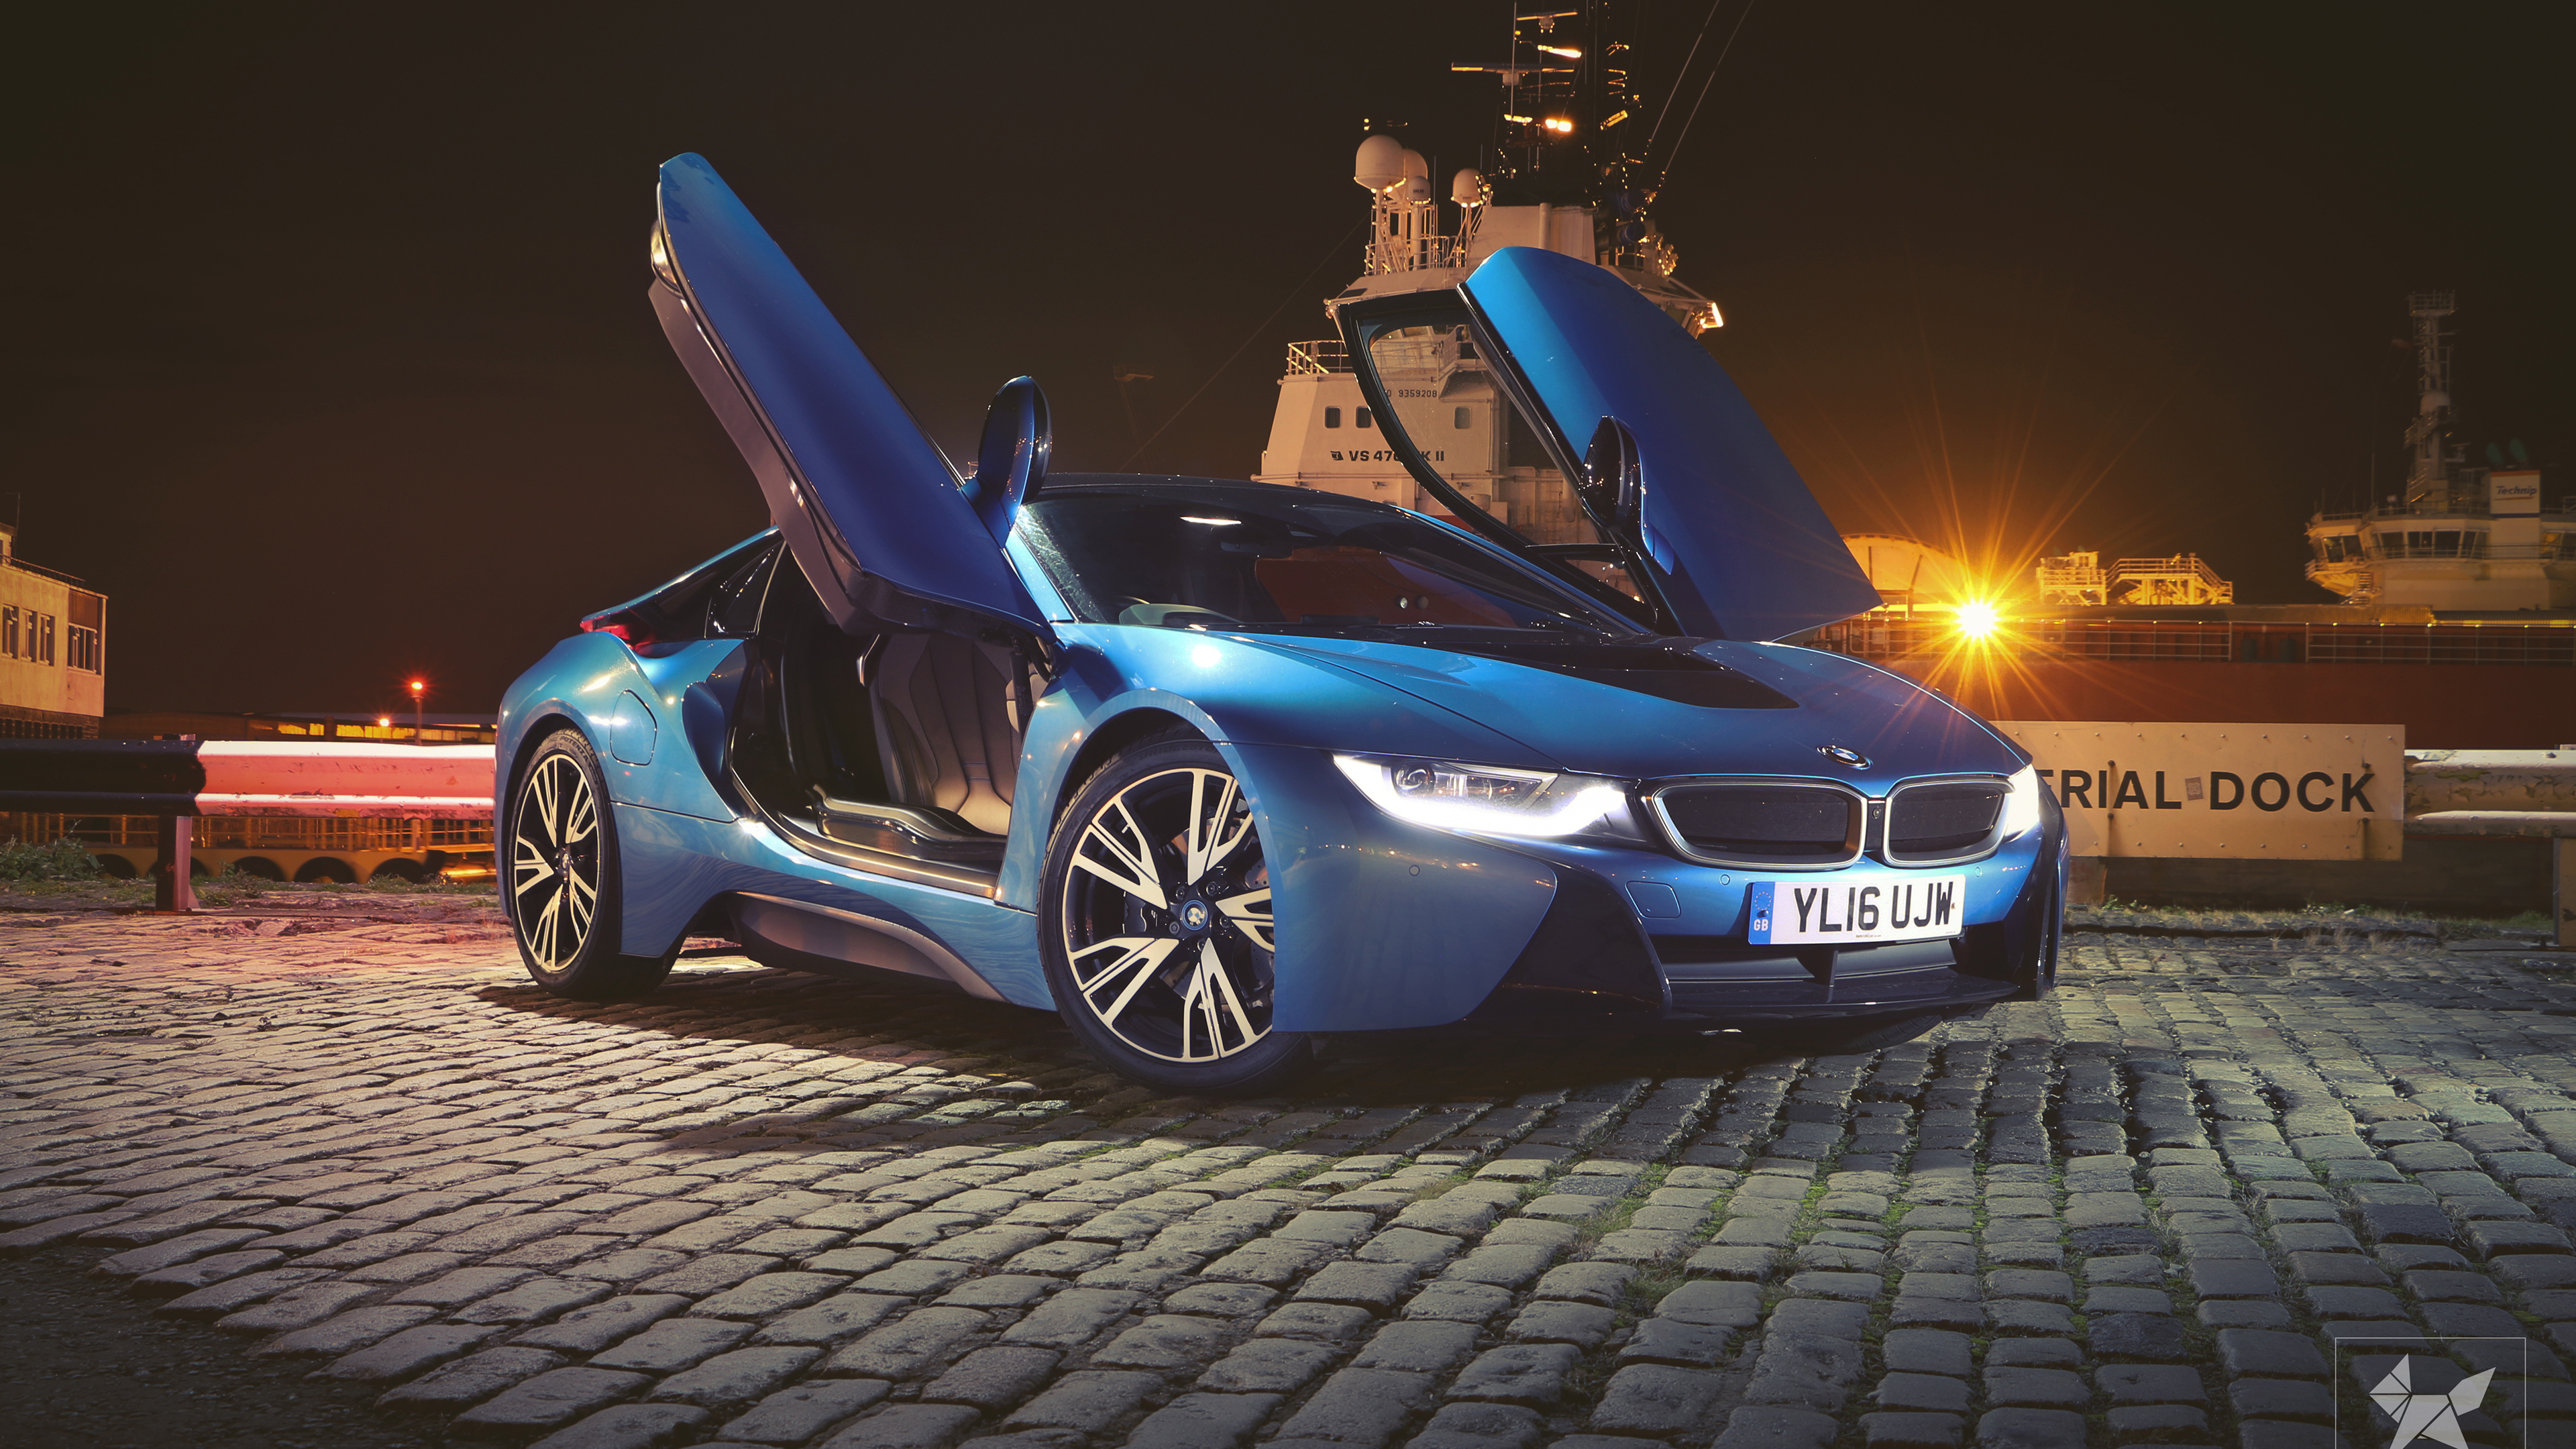 bmw i8 doors up 1539113856 - BMW I8 Doors Up - hd-wallpapers, cars wallpapers, bmw wallpapers, bmw i8 wallpapers, behance wallpapers, artist wallpapers, 2018 cars wallpapers